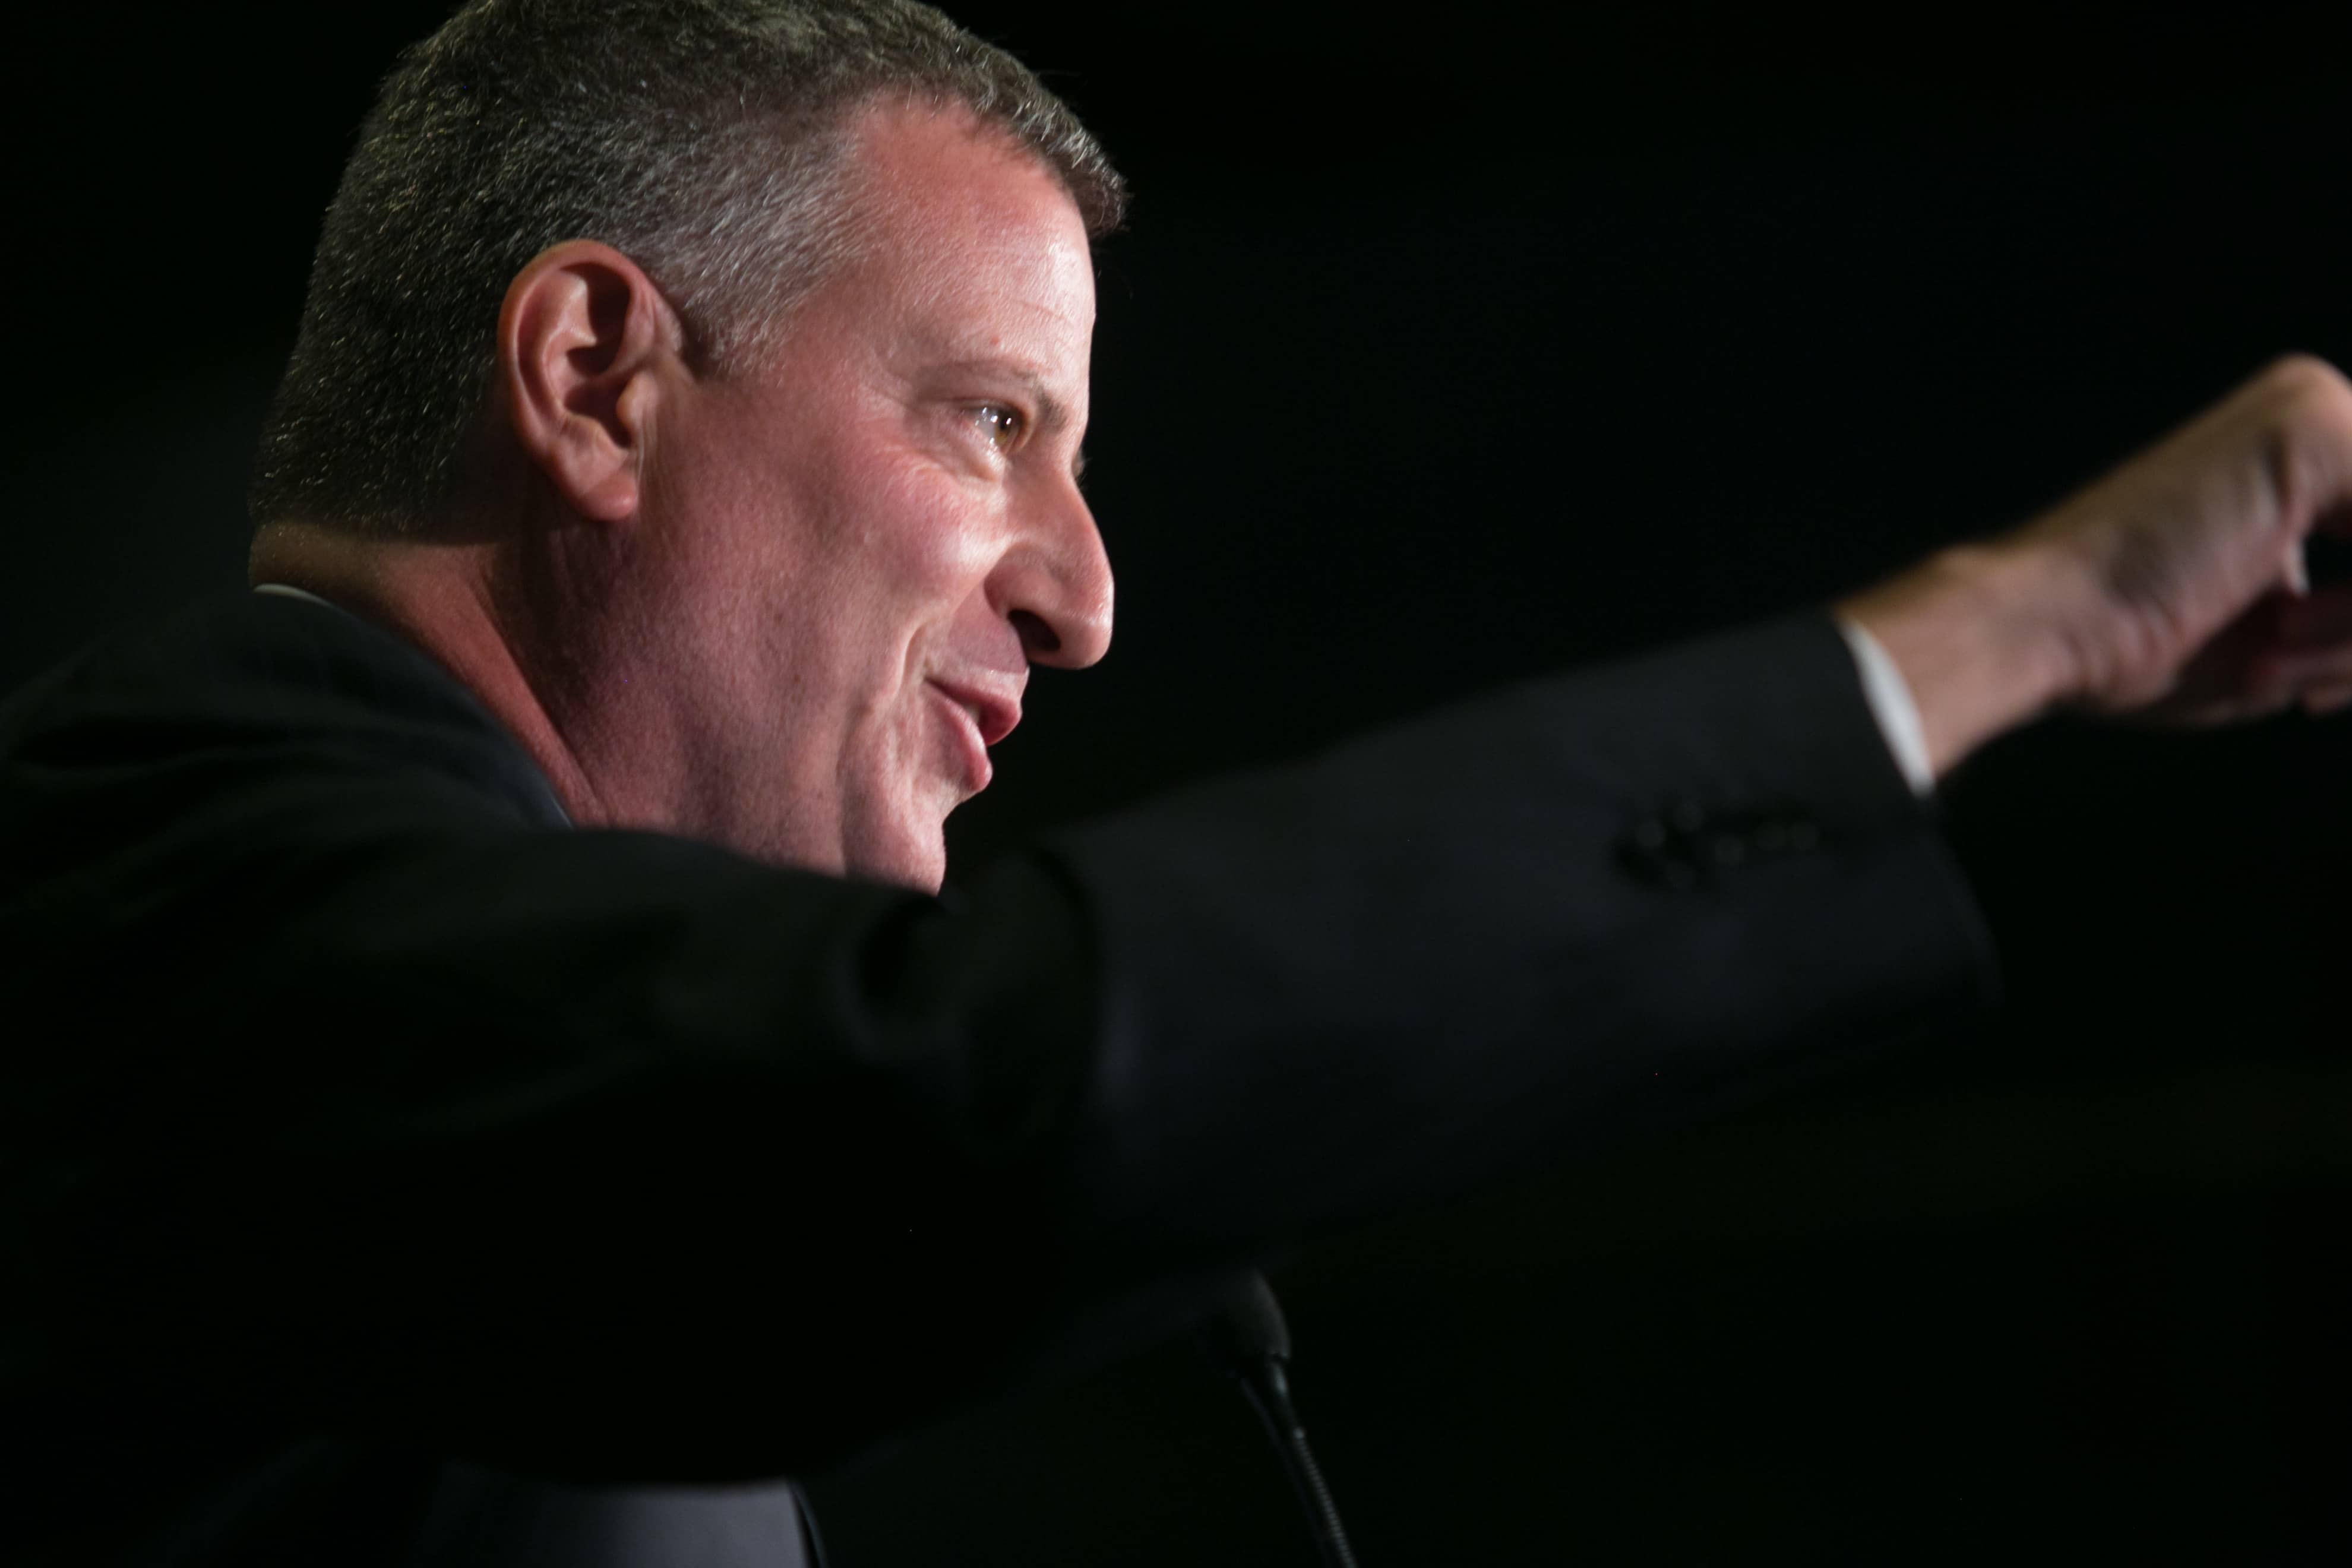 New York City Mayor Bill De Blasio, honored at Campaign for America's Future 2014 awards gala at Arena Stage on Tuesday, October 14, 2014.